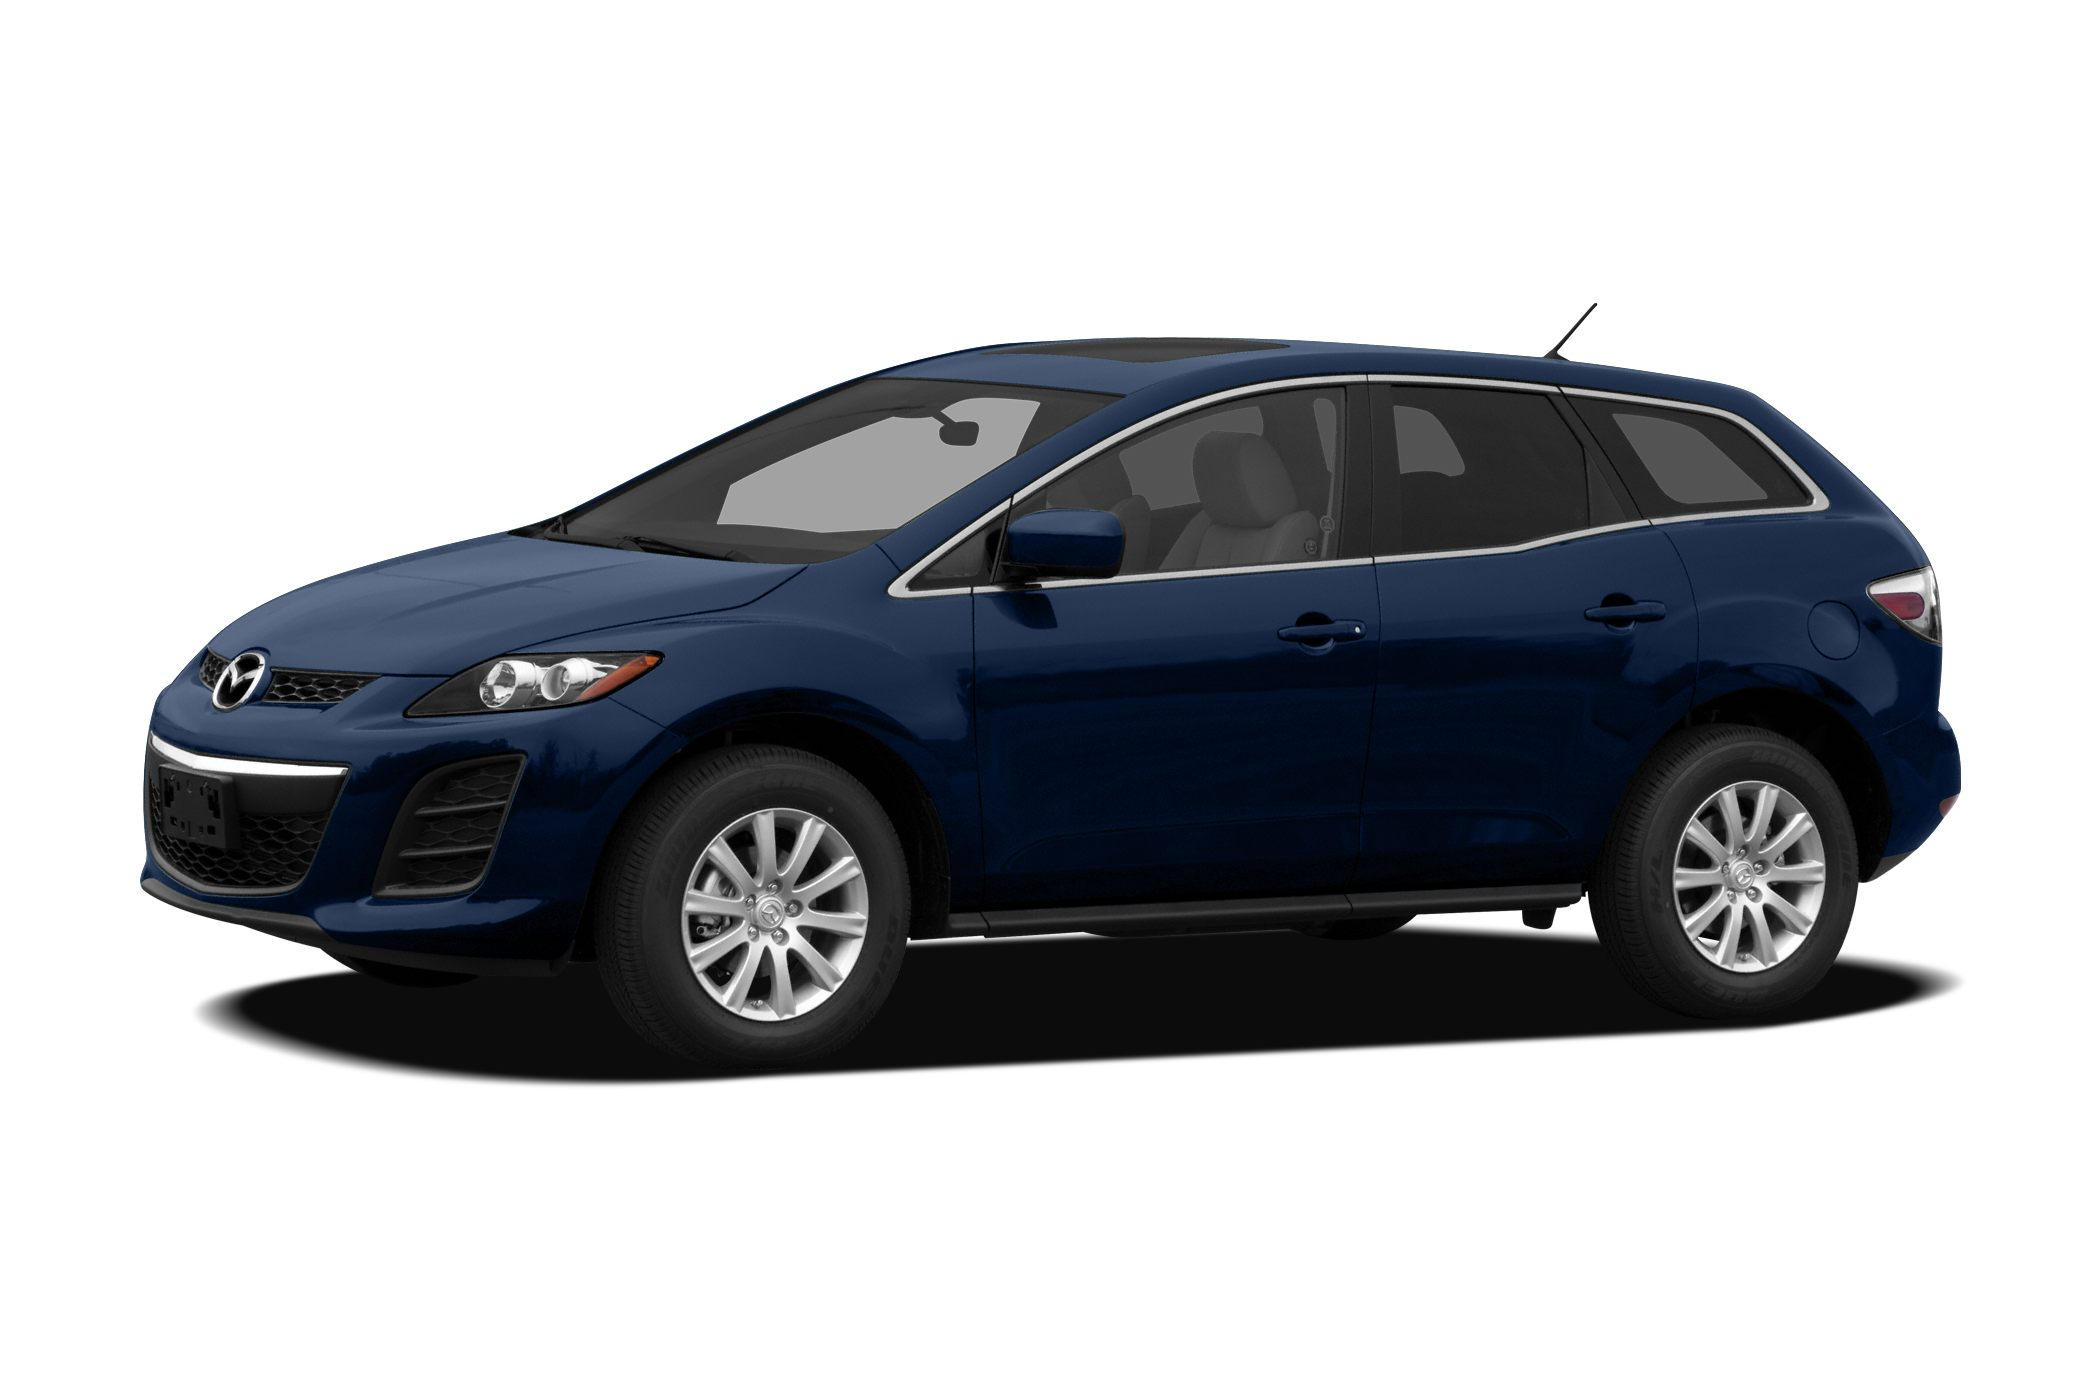 2011 Mazda CX-7 I SV SUV for sale in Las Cruces for $18,599 with 28,277 miles.